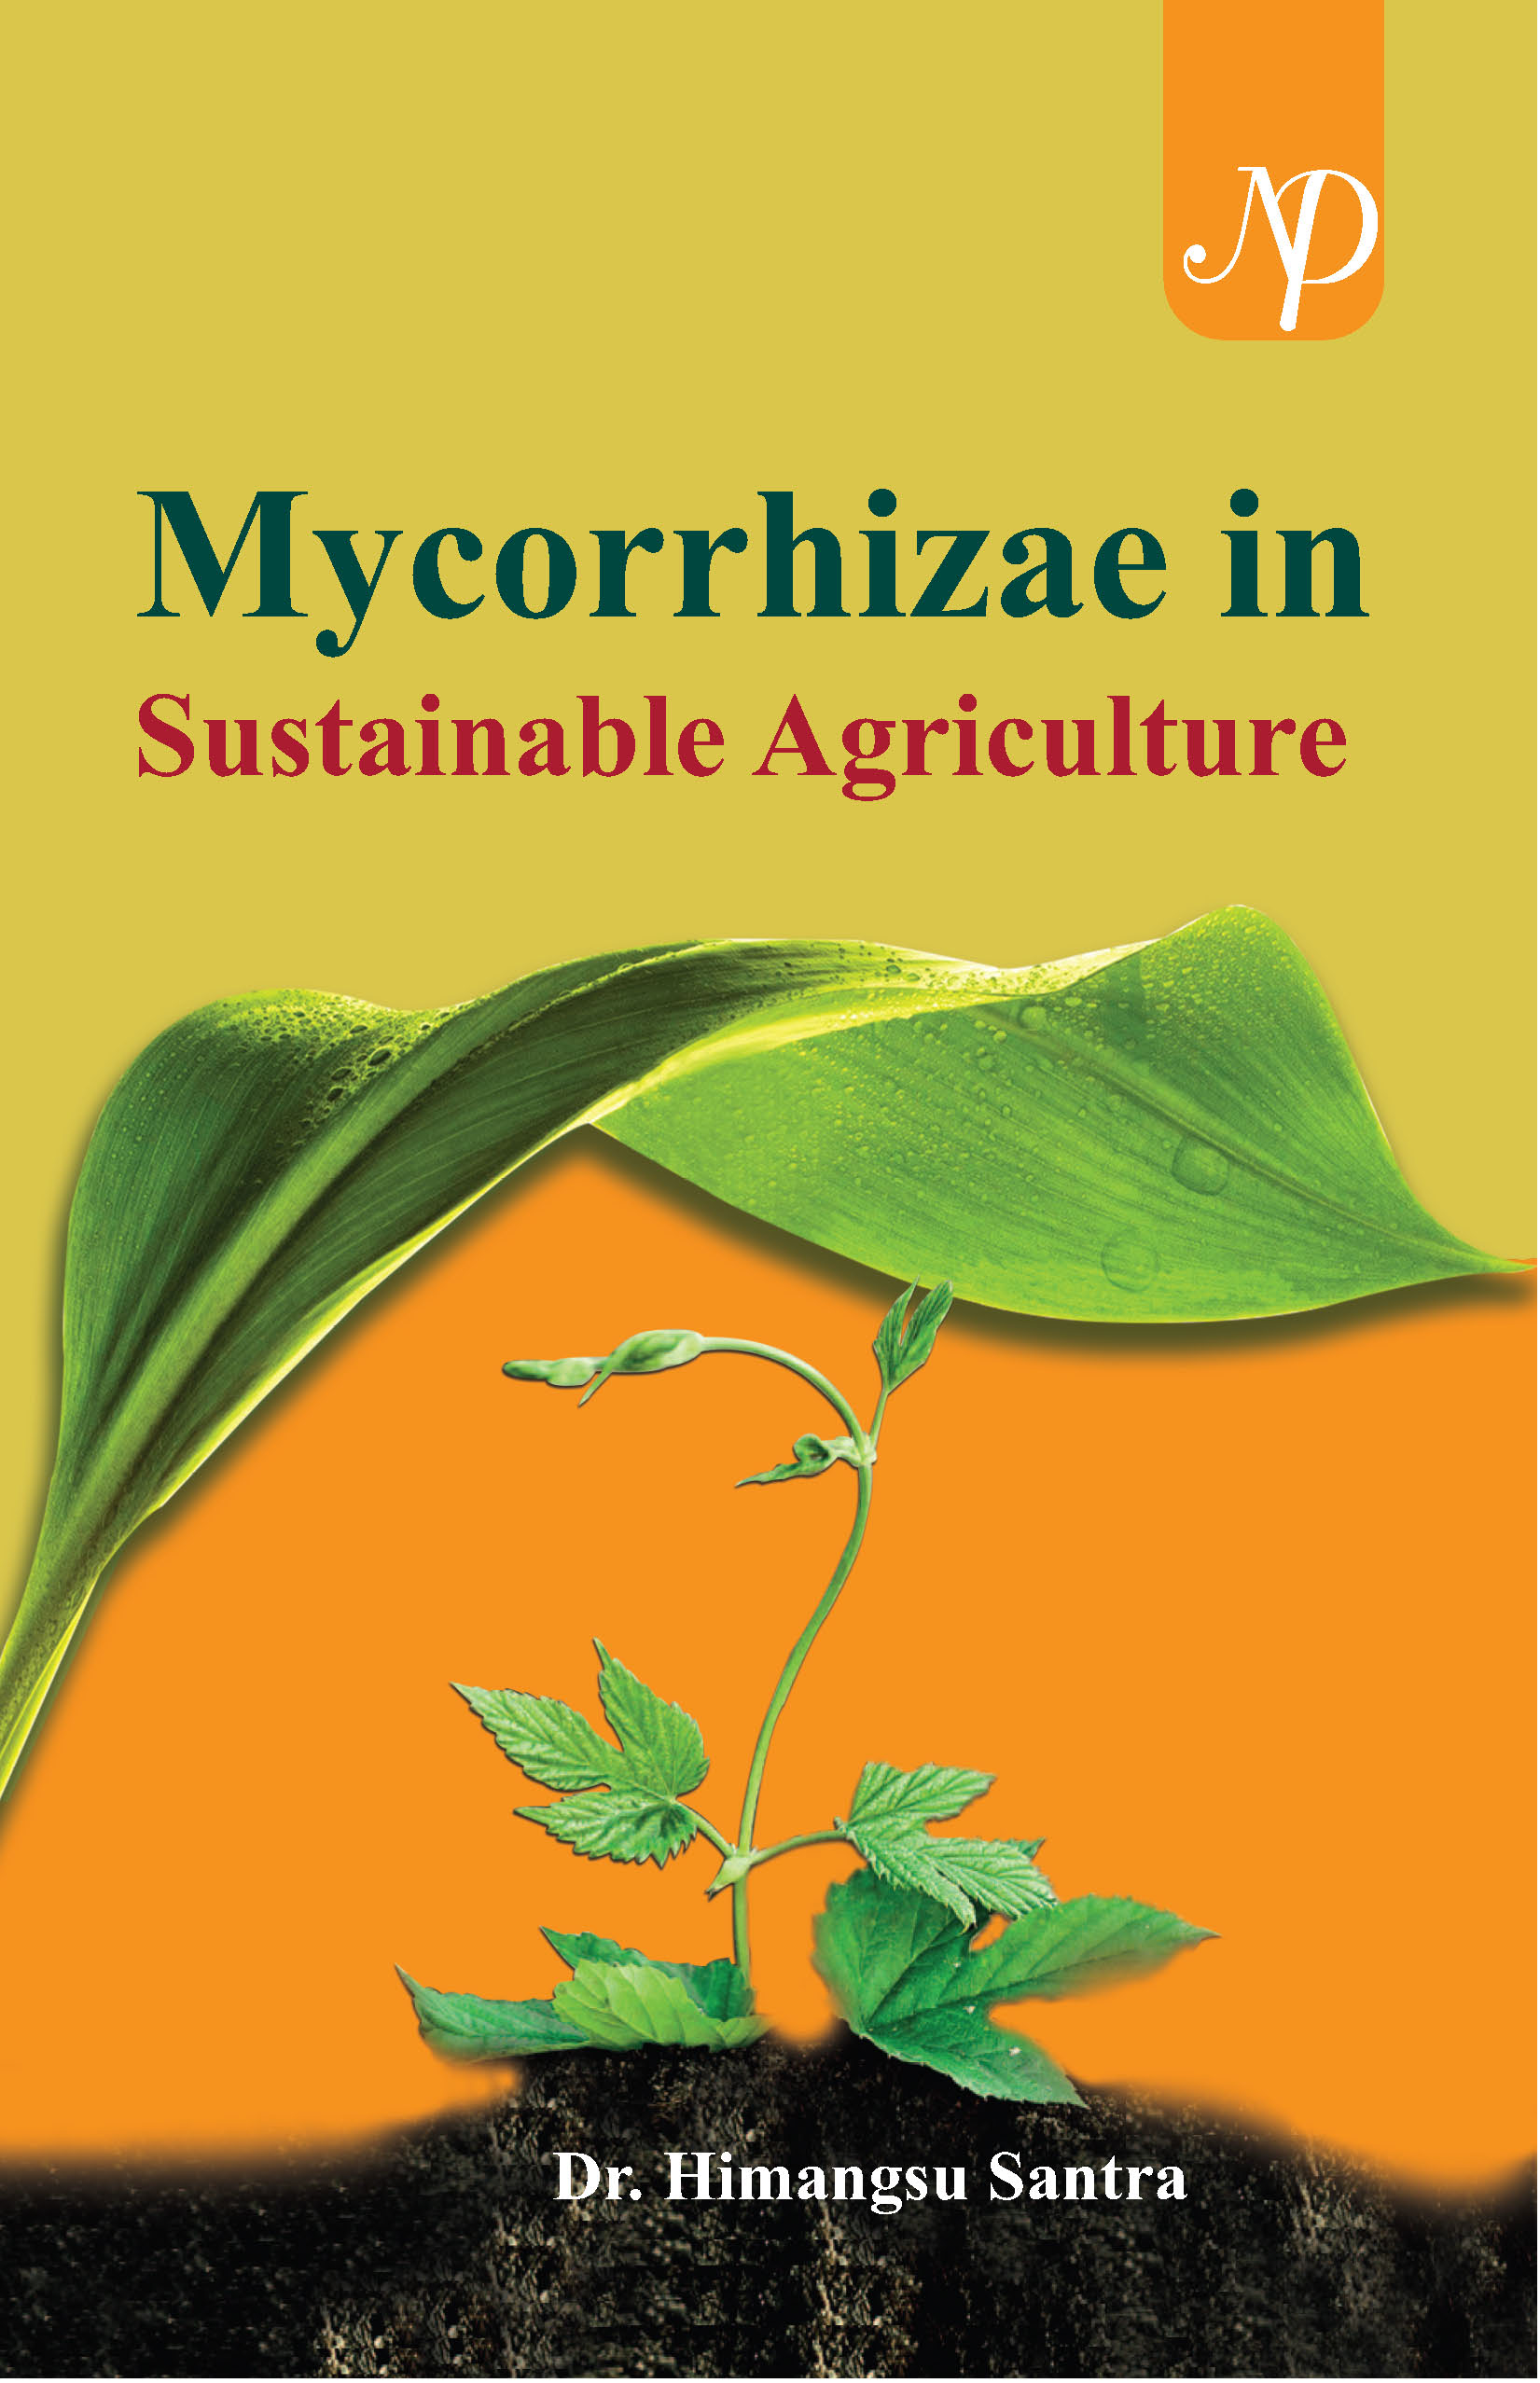 MYCORRHIZAE IN SUSTAINABLE AGRICULTURE cover.jpg